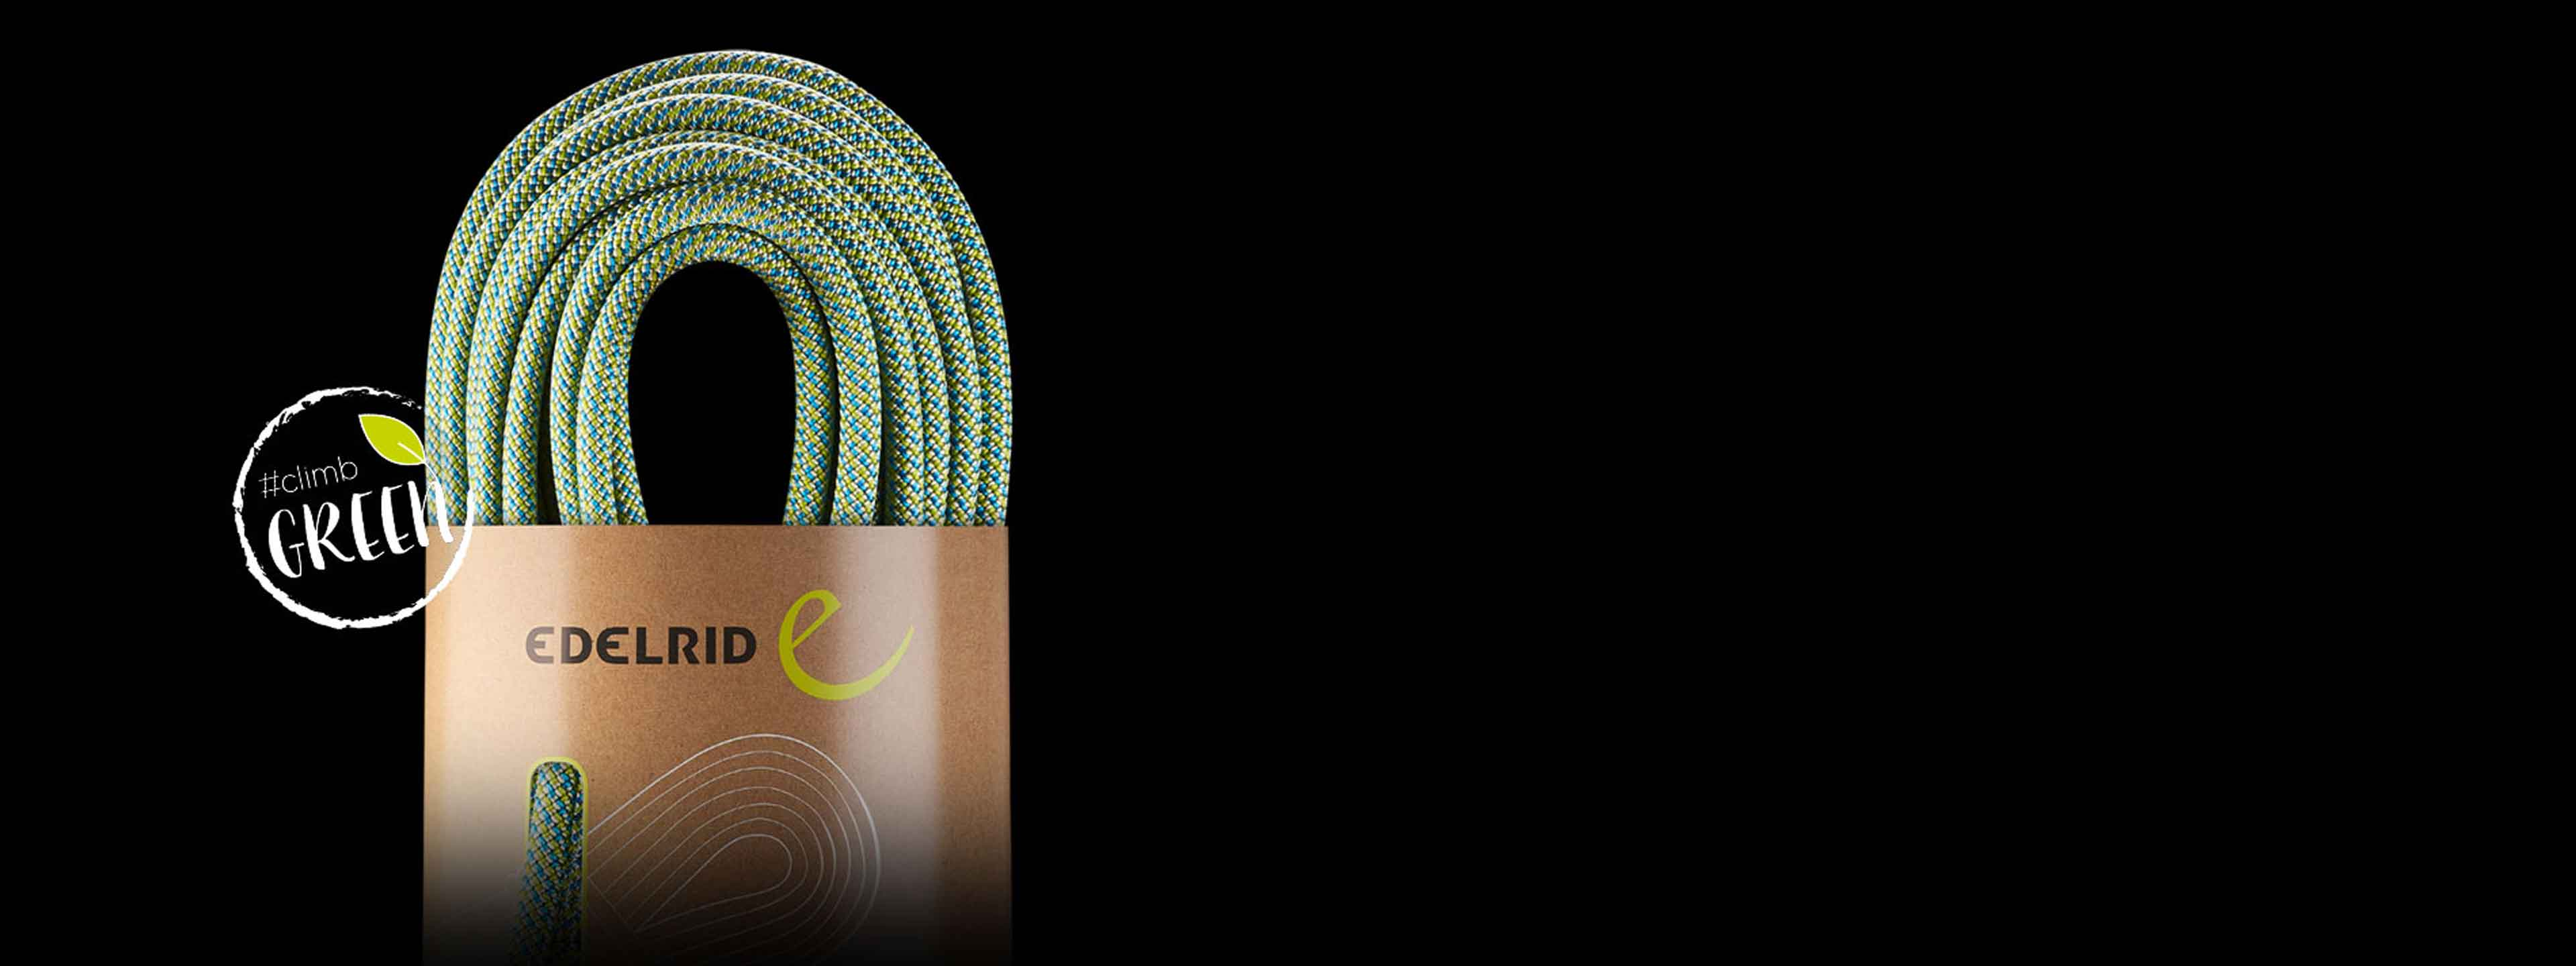 Edelrid recycled climbing rope neo 3r HP header